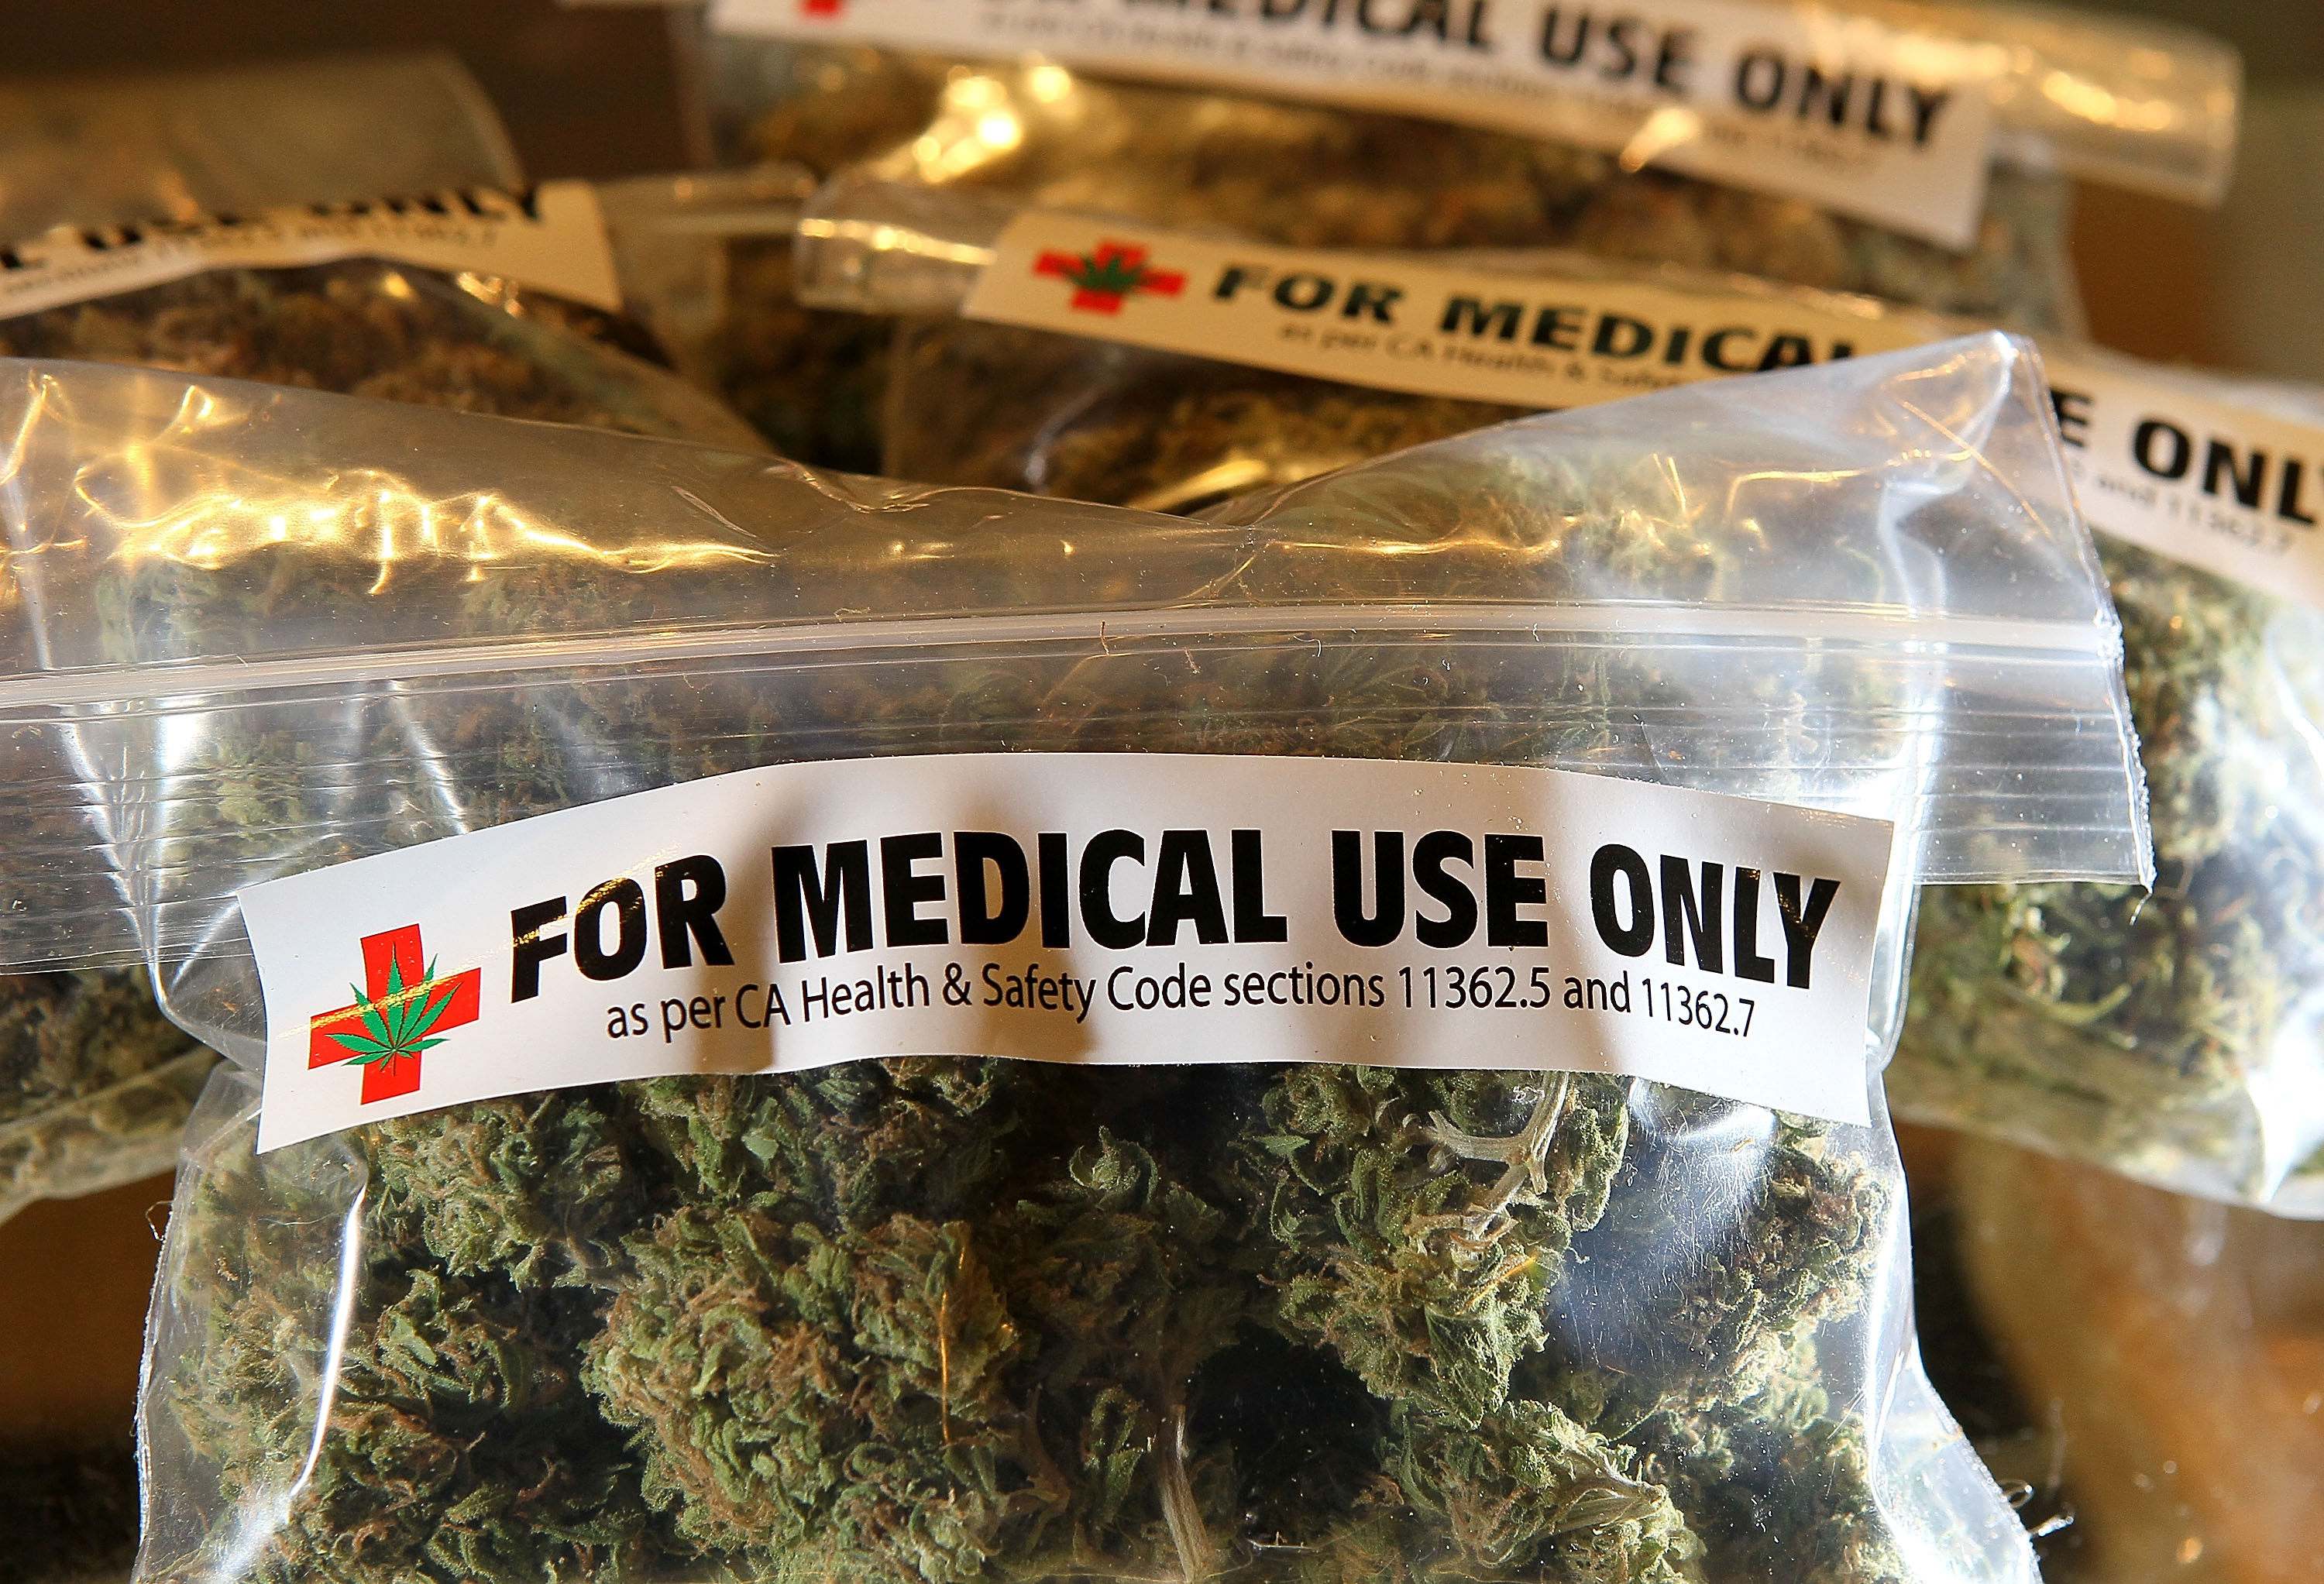 One-ounce bags of medicinal marijuana are displayed at the Berkeley Patients Group March 25, 2010 in Berkeley, California.